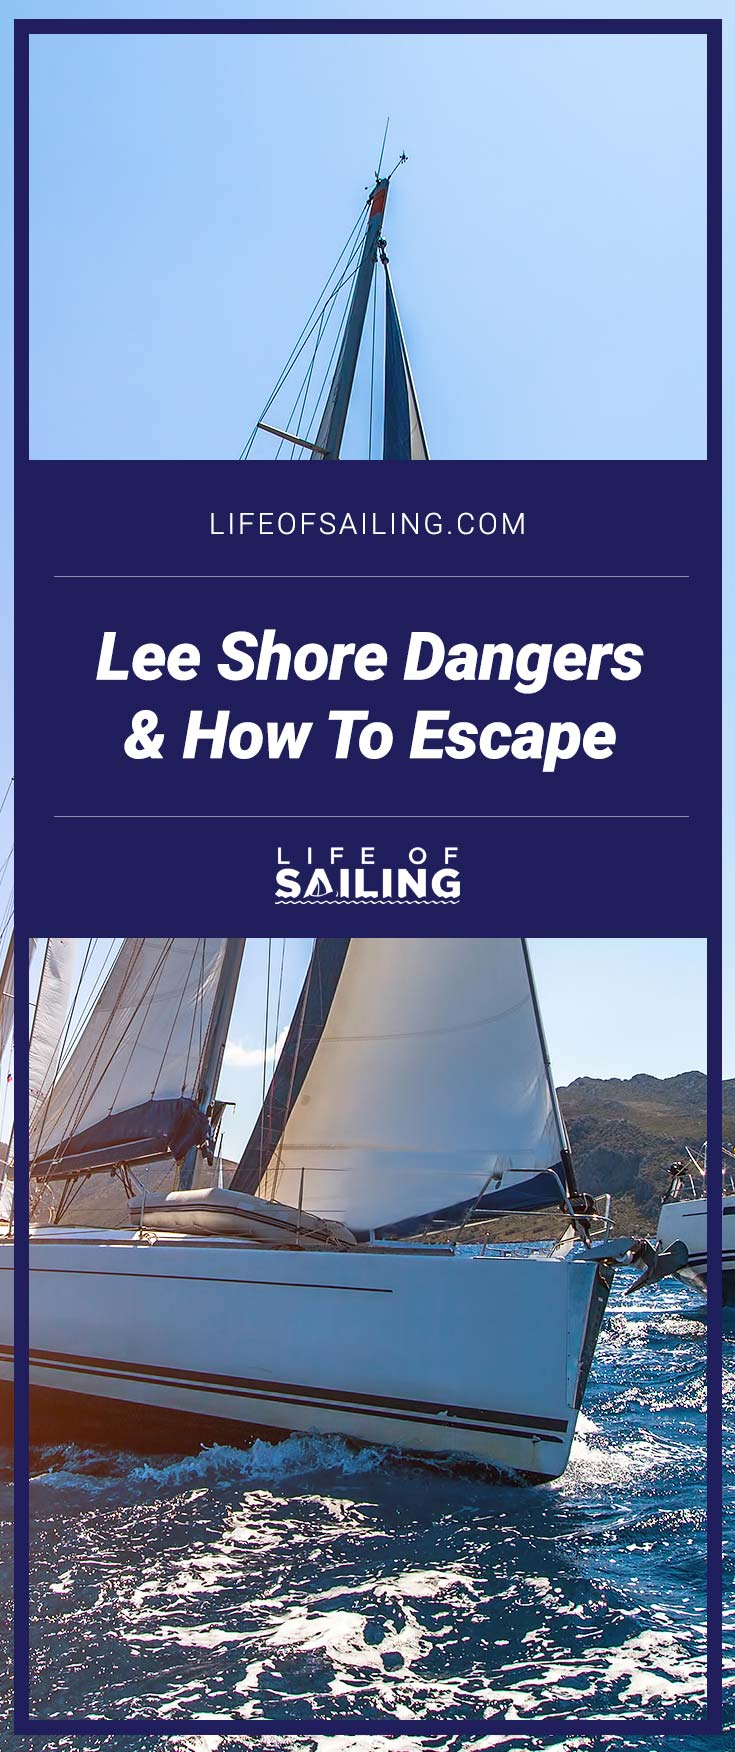 Lee Shore Dangers and How To Escape